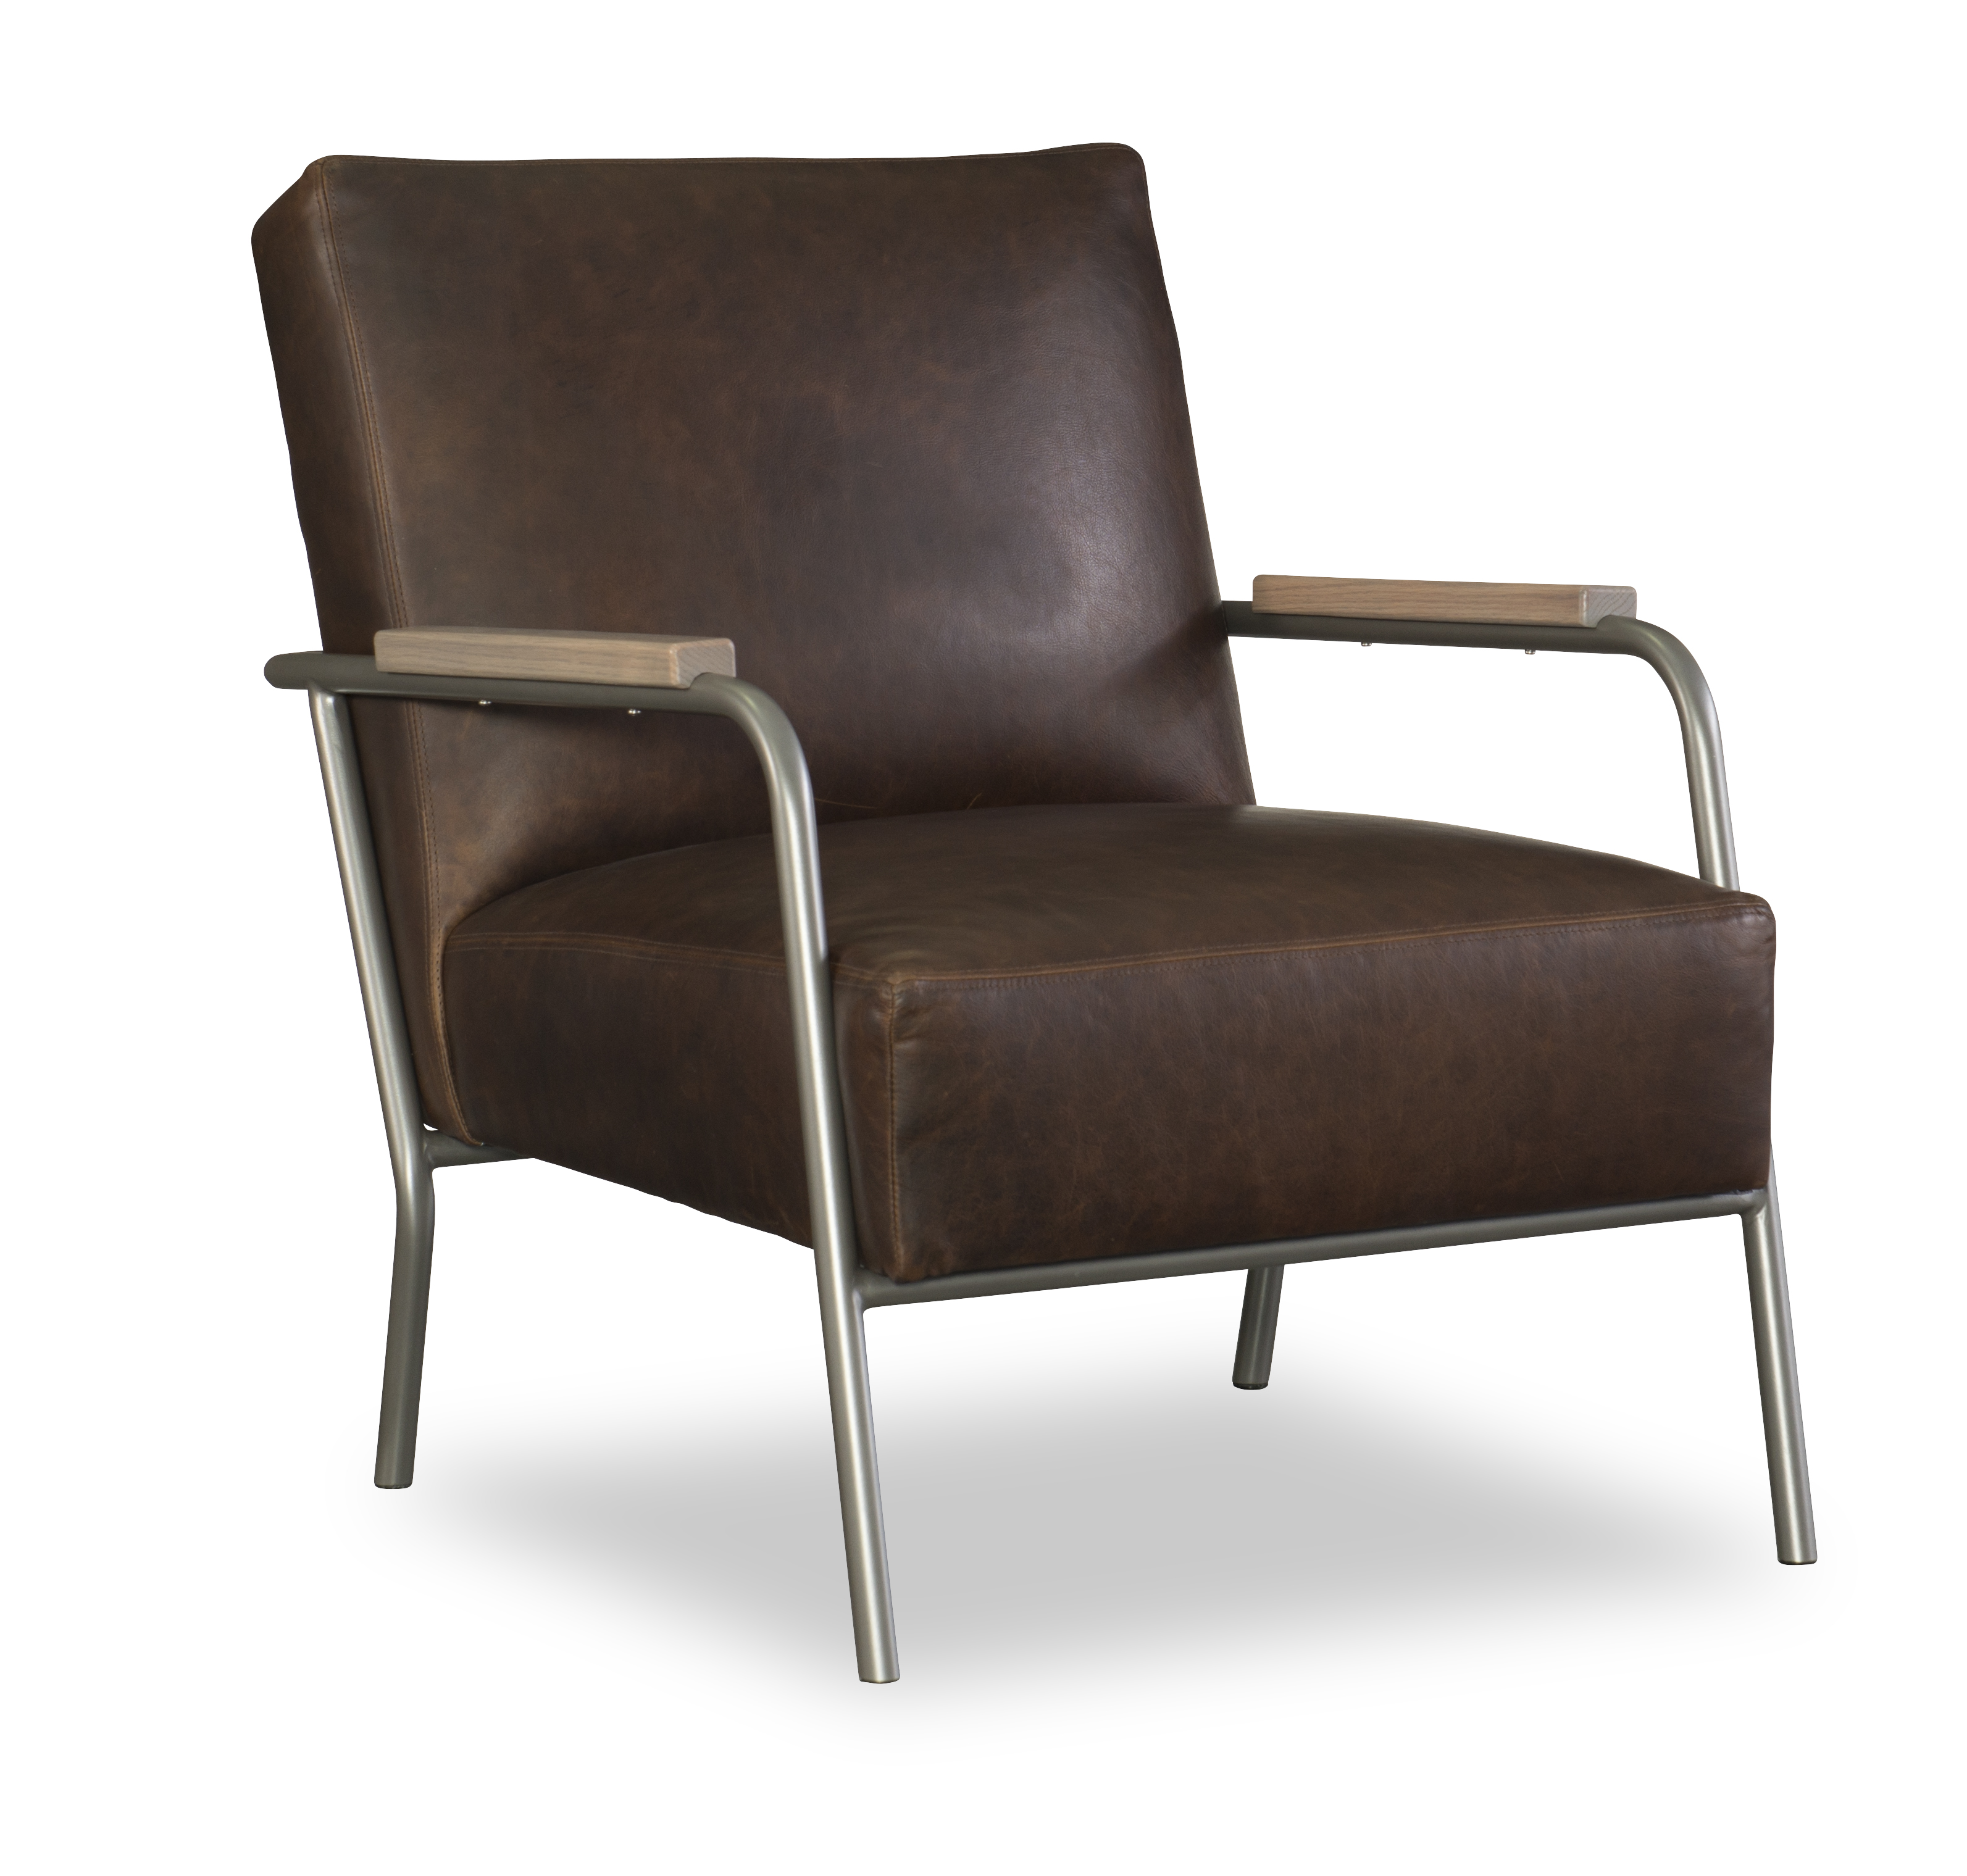 Levi chair upholstered in Arizona Rustic leather from CR Laine